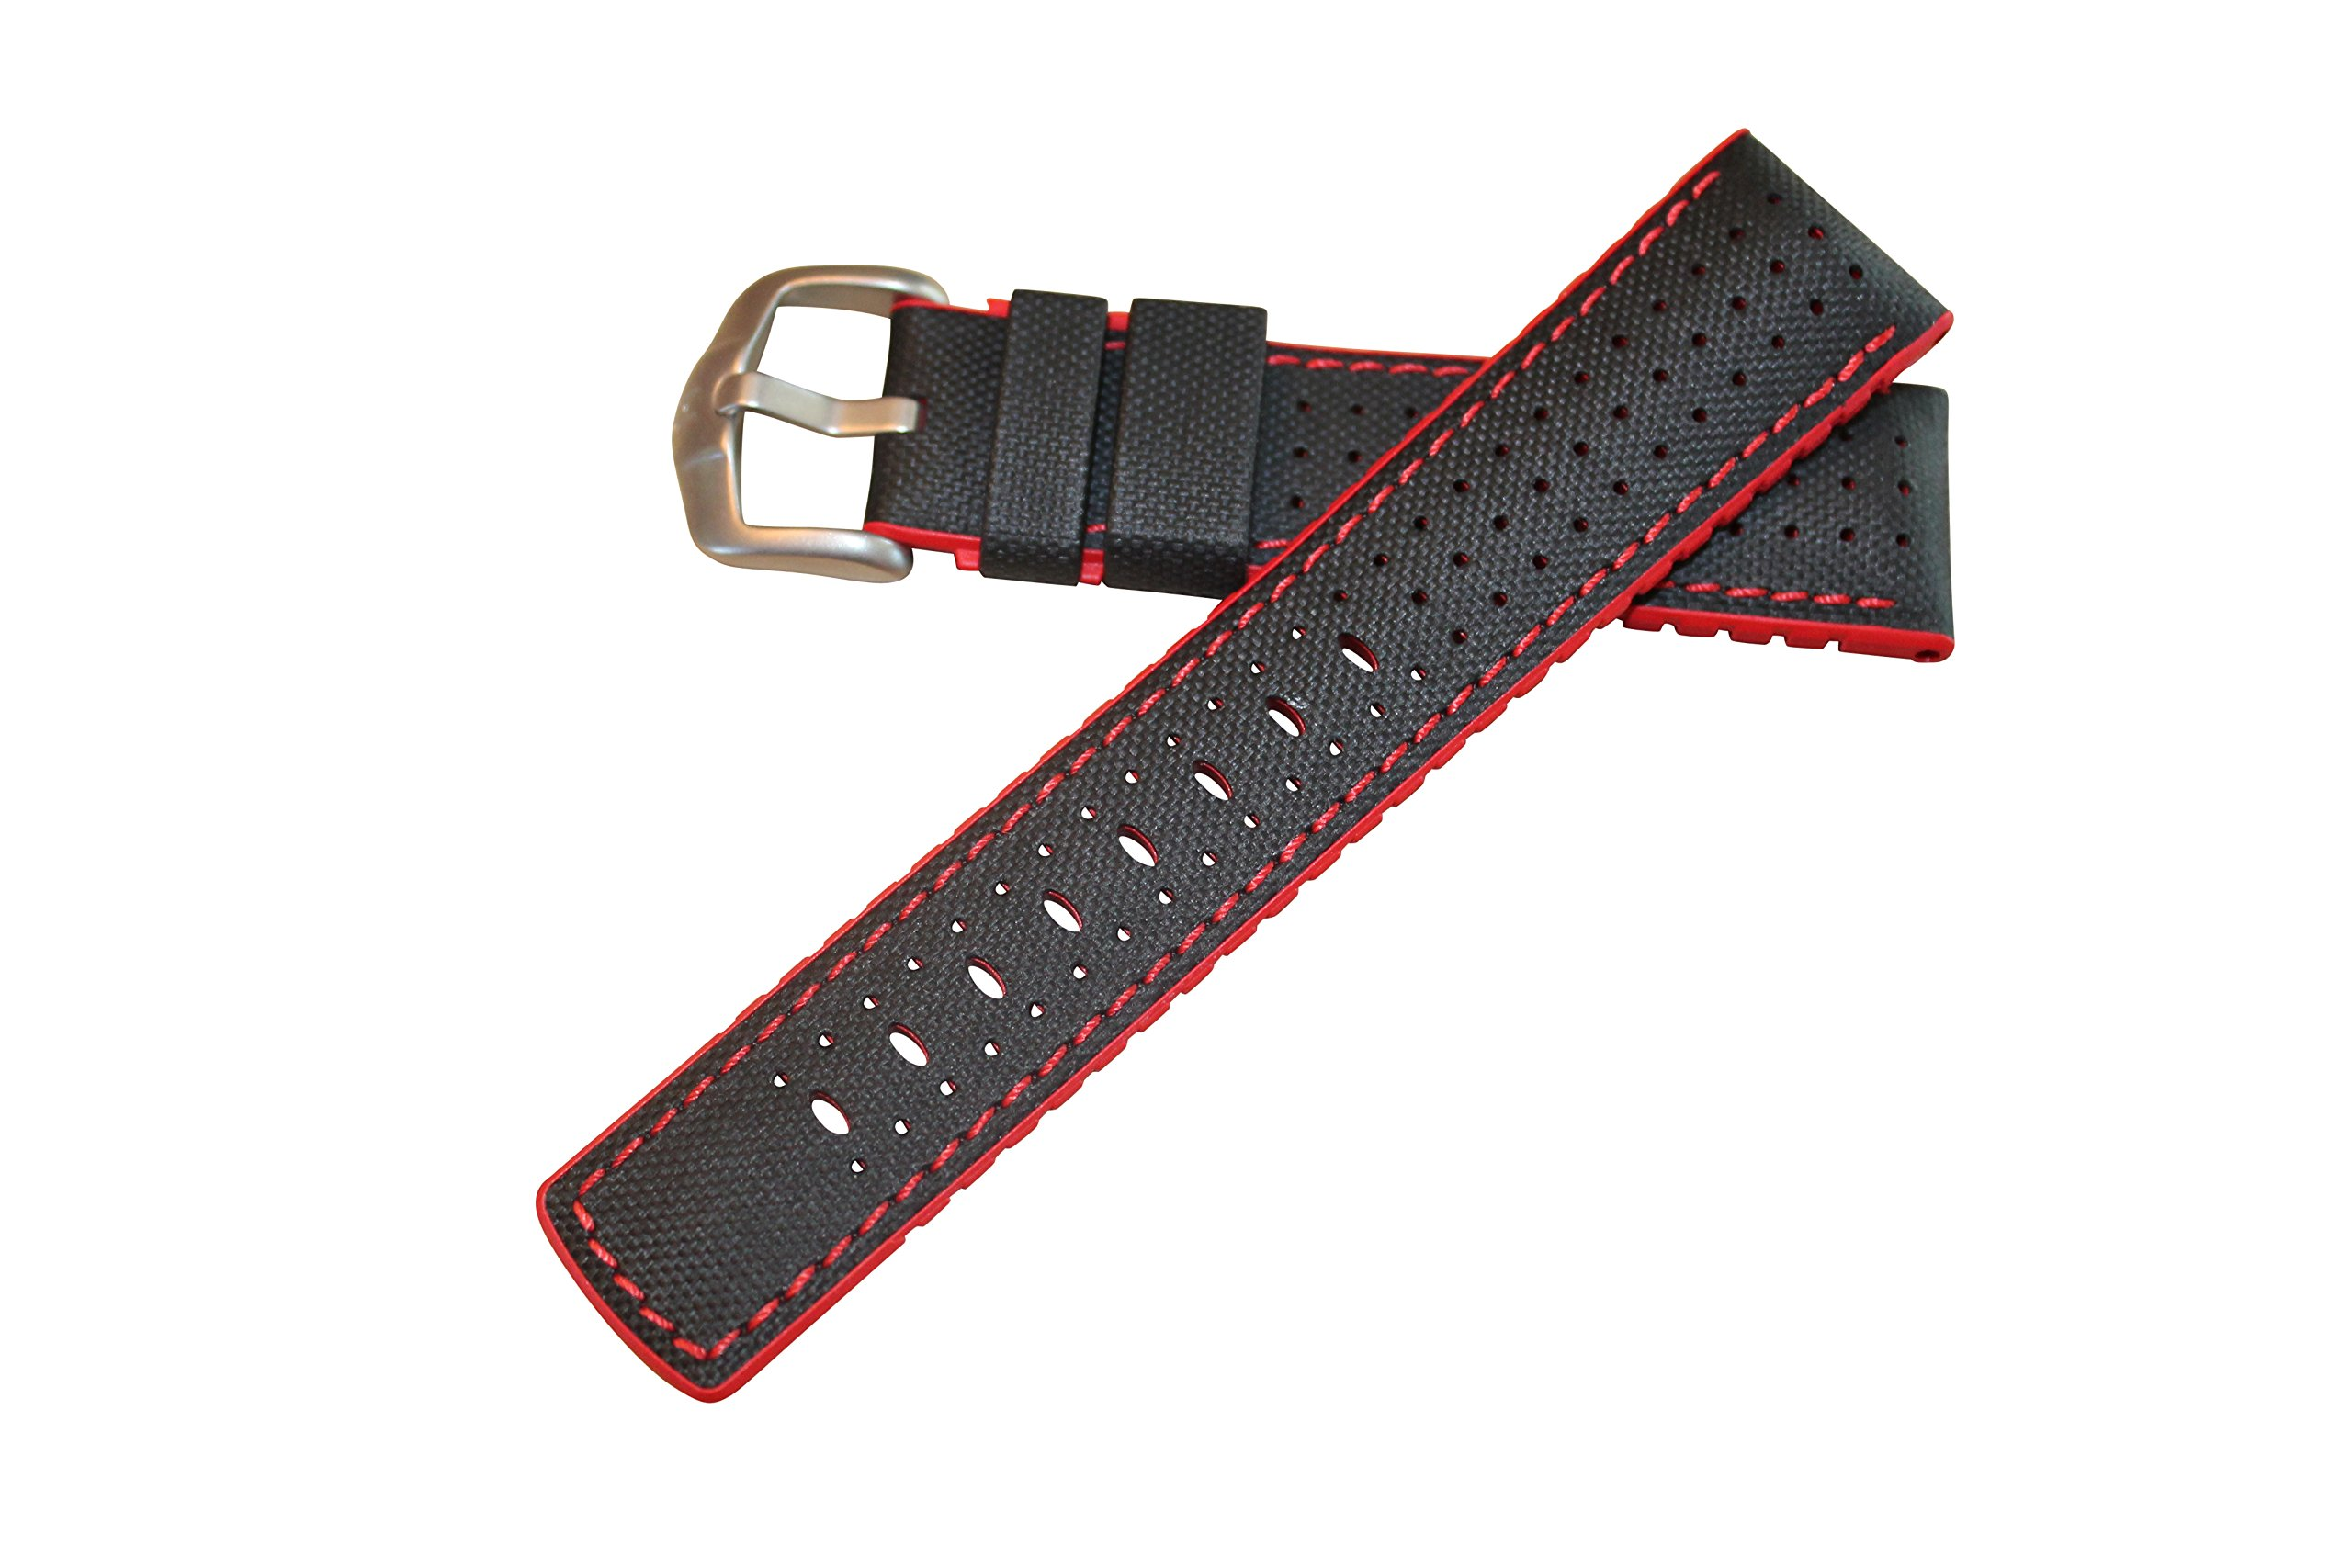 Hirsch Performance Robby Sailcloth Style 22mm Leather and Rubber Watch Band Black / Red